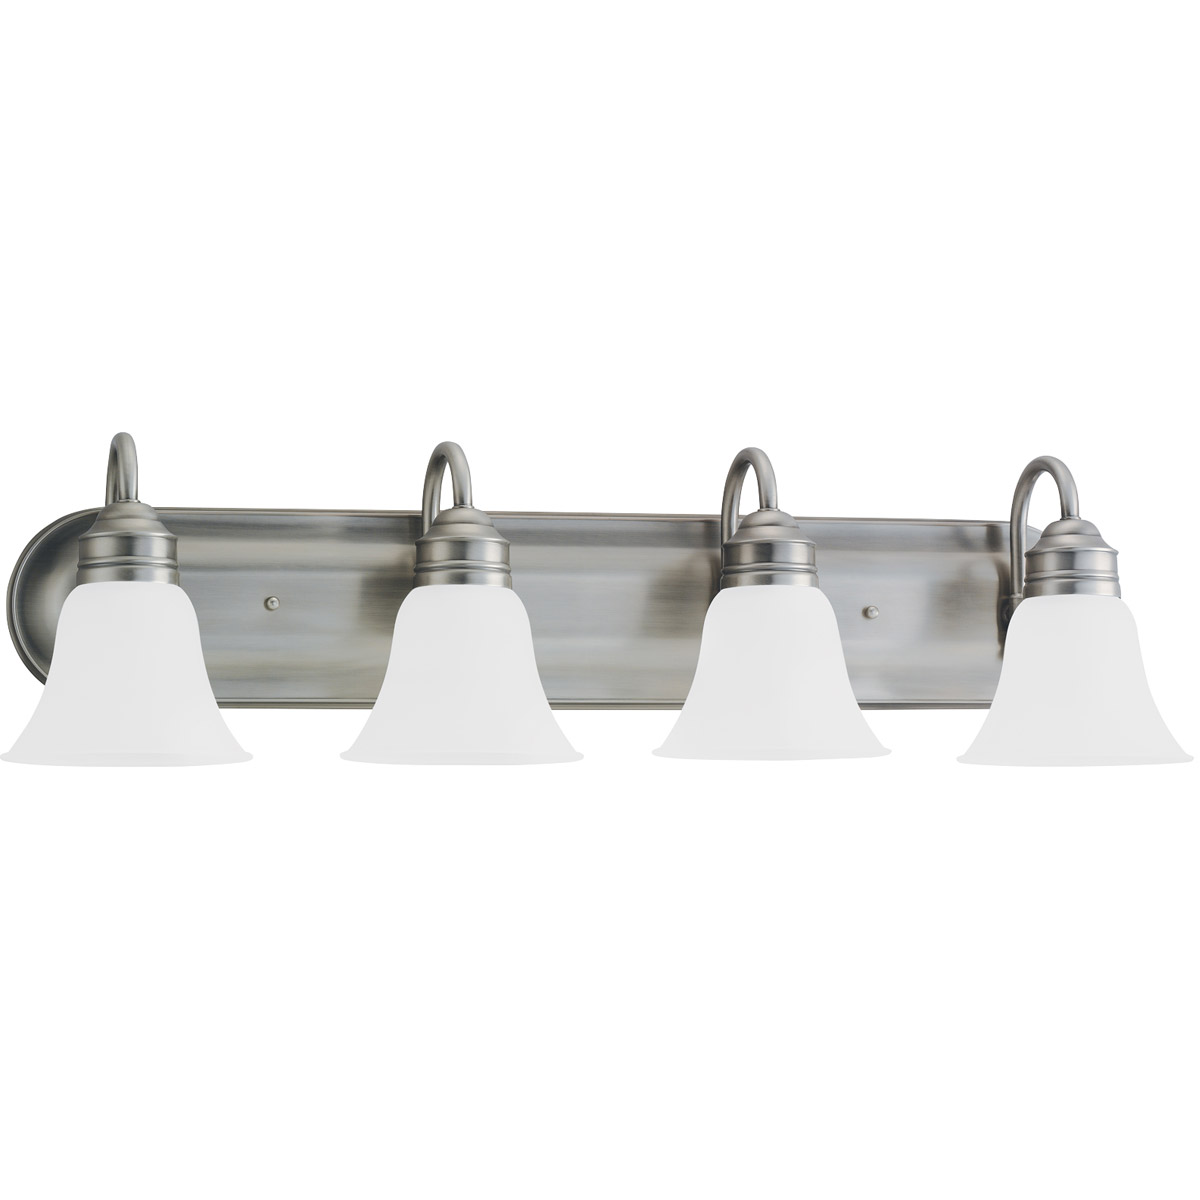 Sea Gull Lighting Gladstone 4 Light Bath Vanity in Antique Brushed Nickel 44853-965